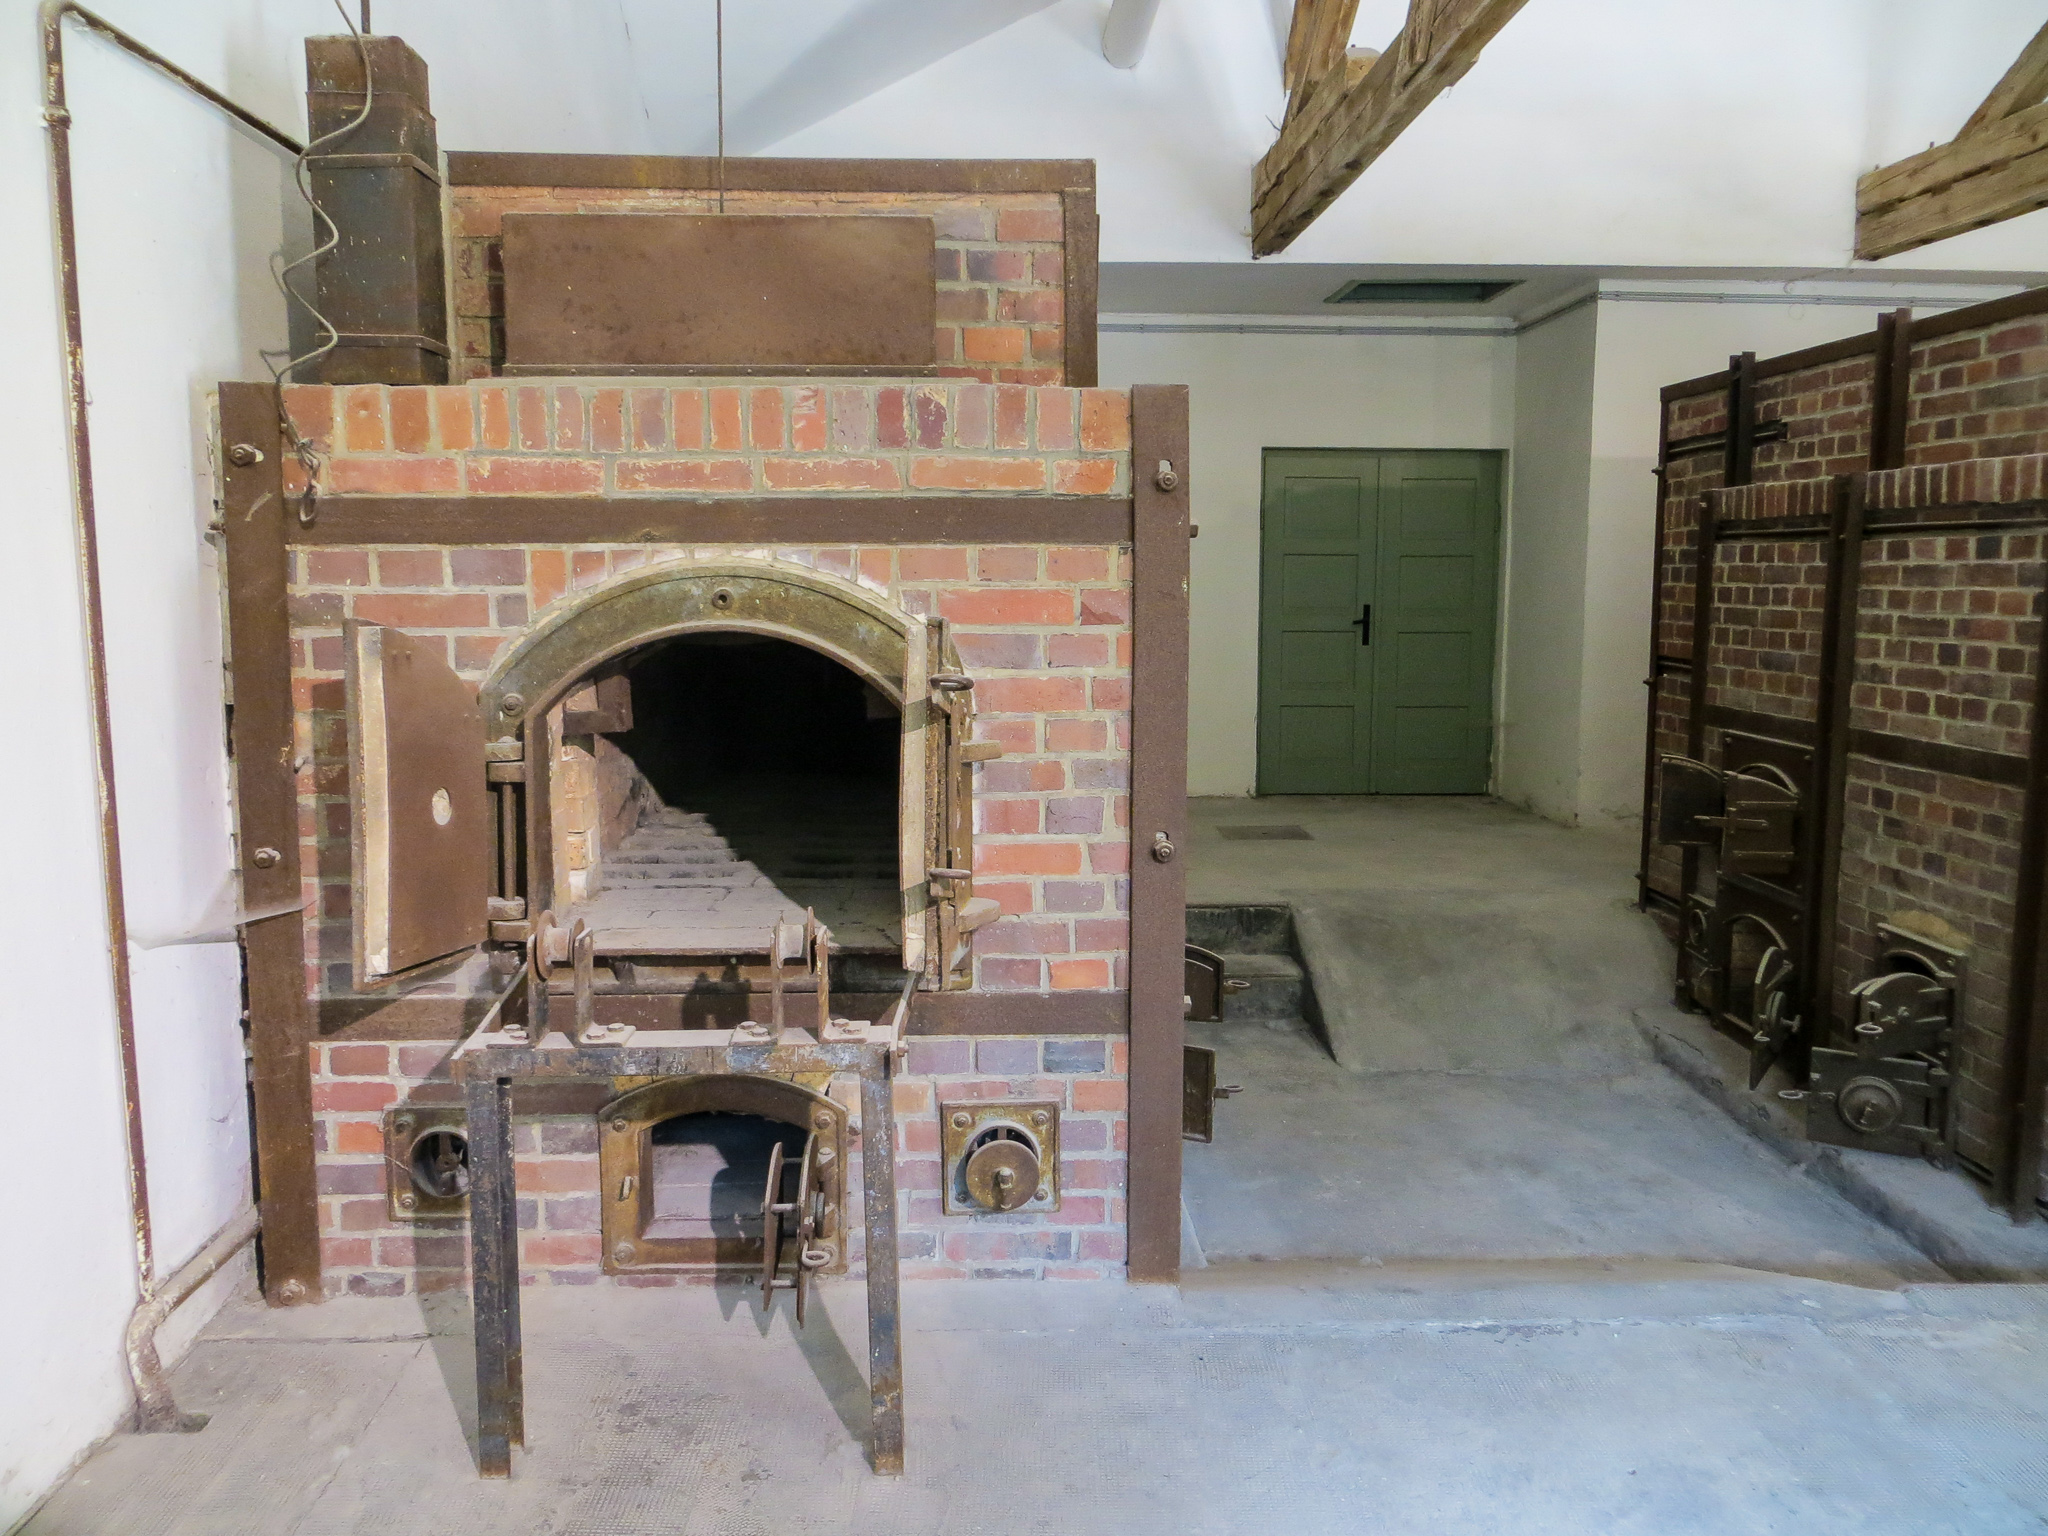 dachau tours from munich: be preapred for the crematorium